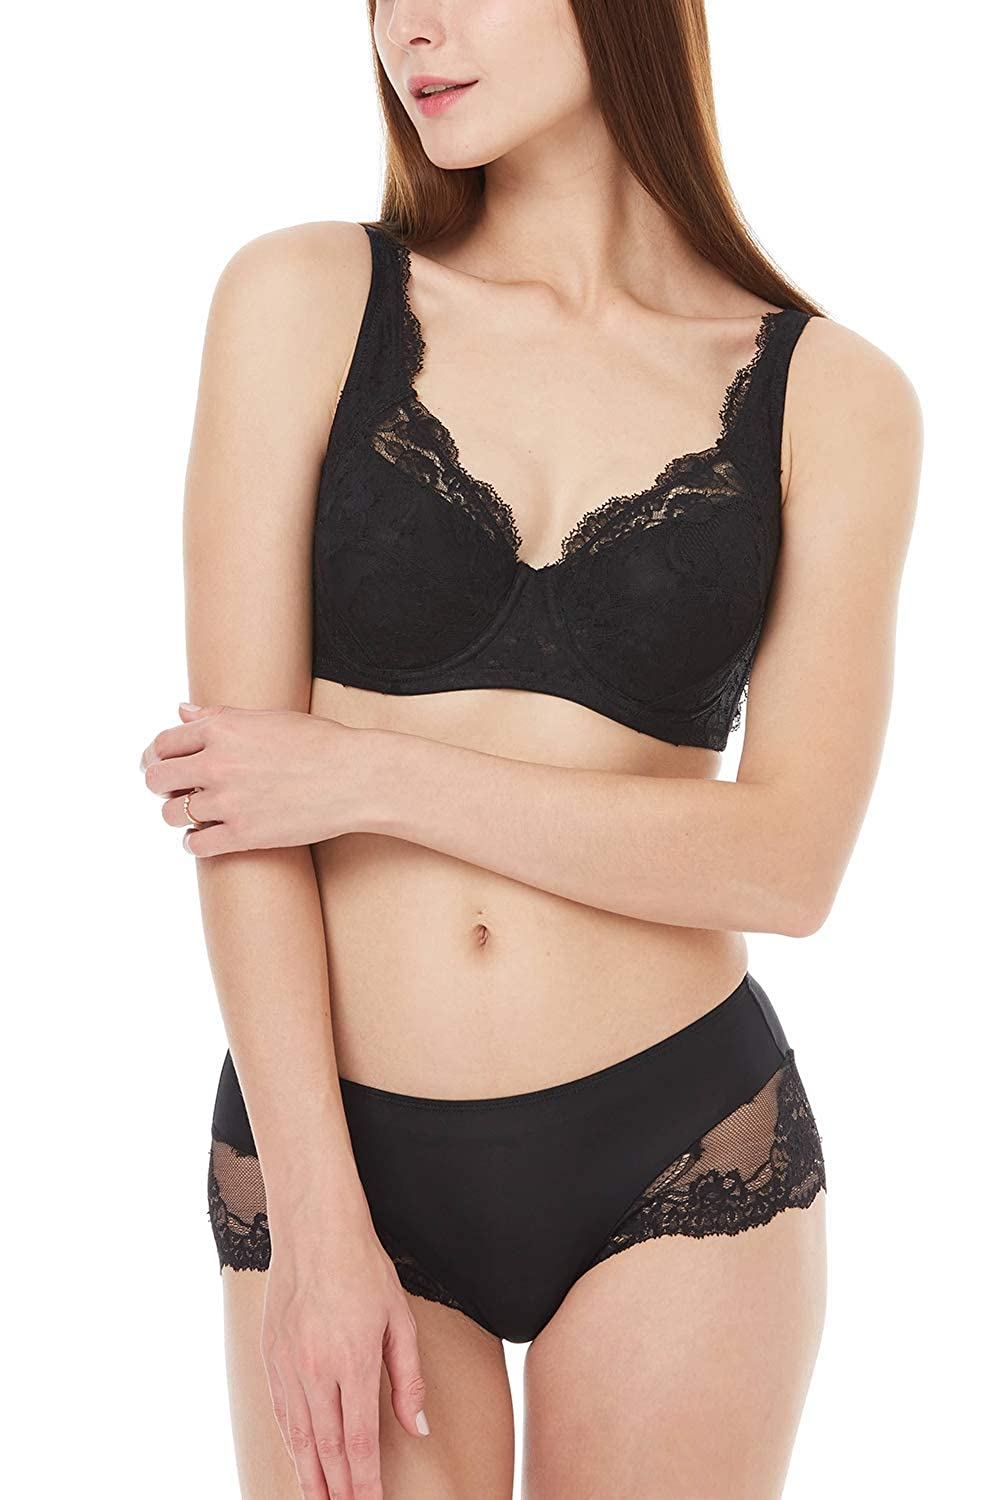 Aimer Women Lace Boyshort Panties and Stretch Low Waisted Hipster Panties for Women